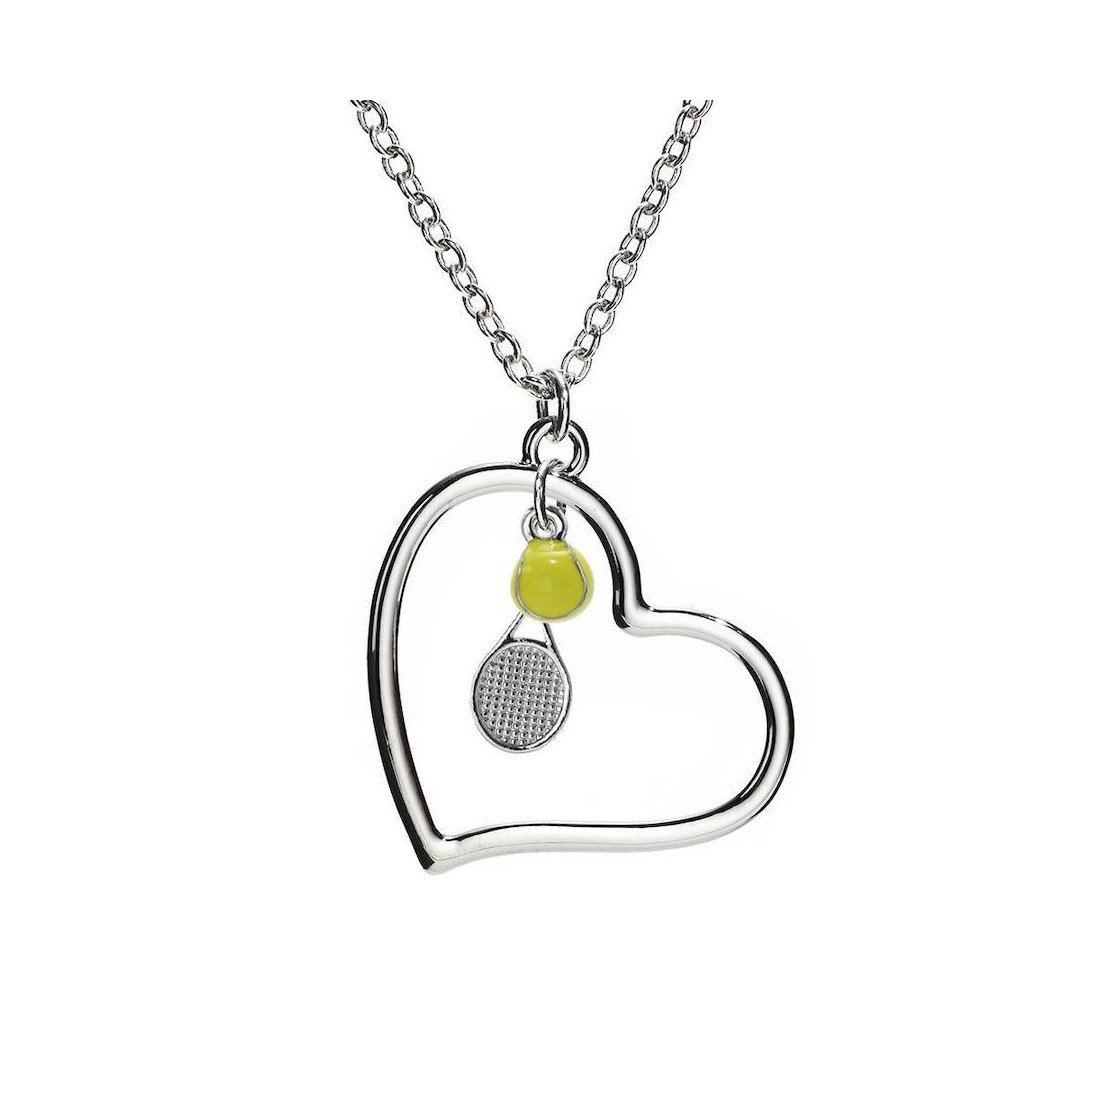 Tennis jewelry consisting of necklace with heart-shaped pendant together with tennis racket & yellow ball